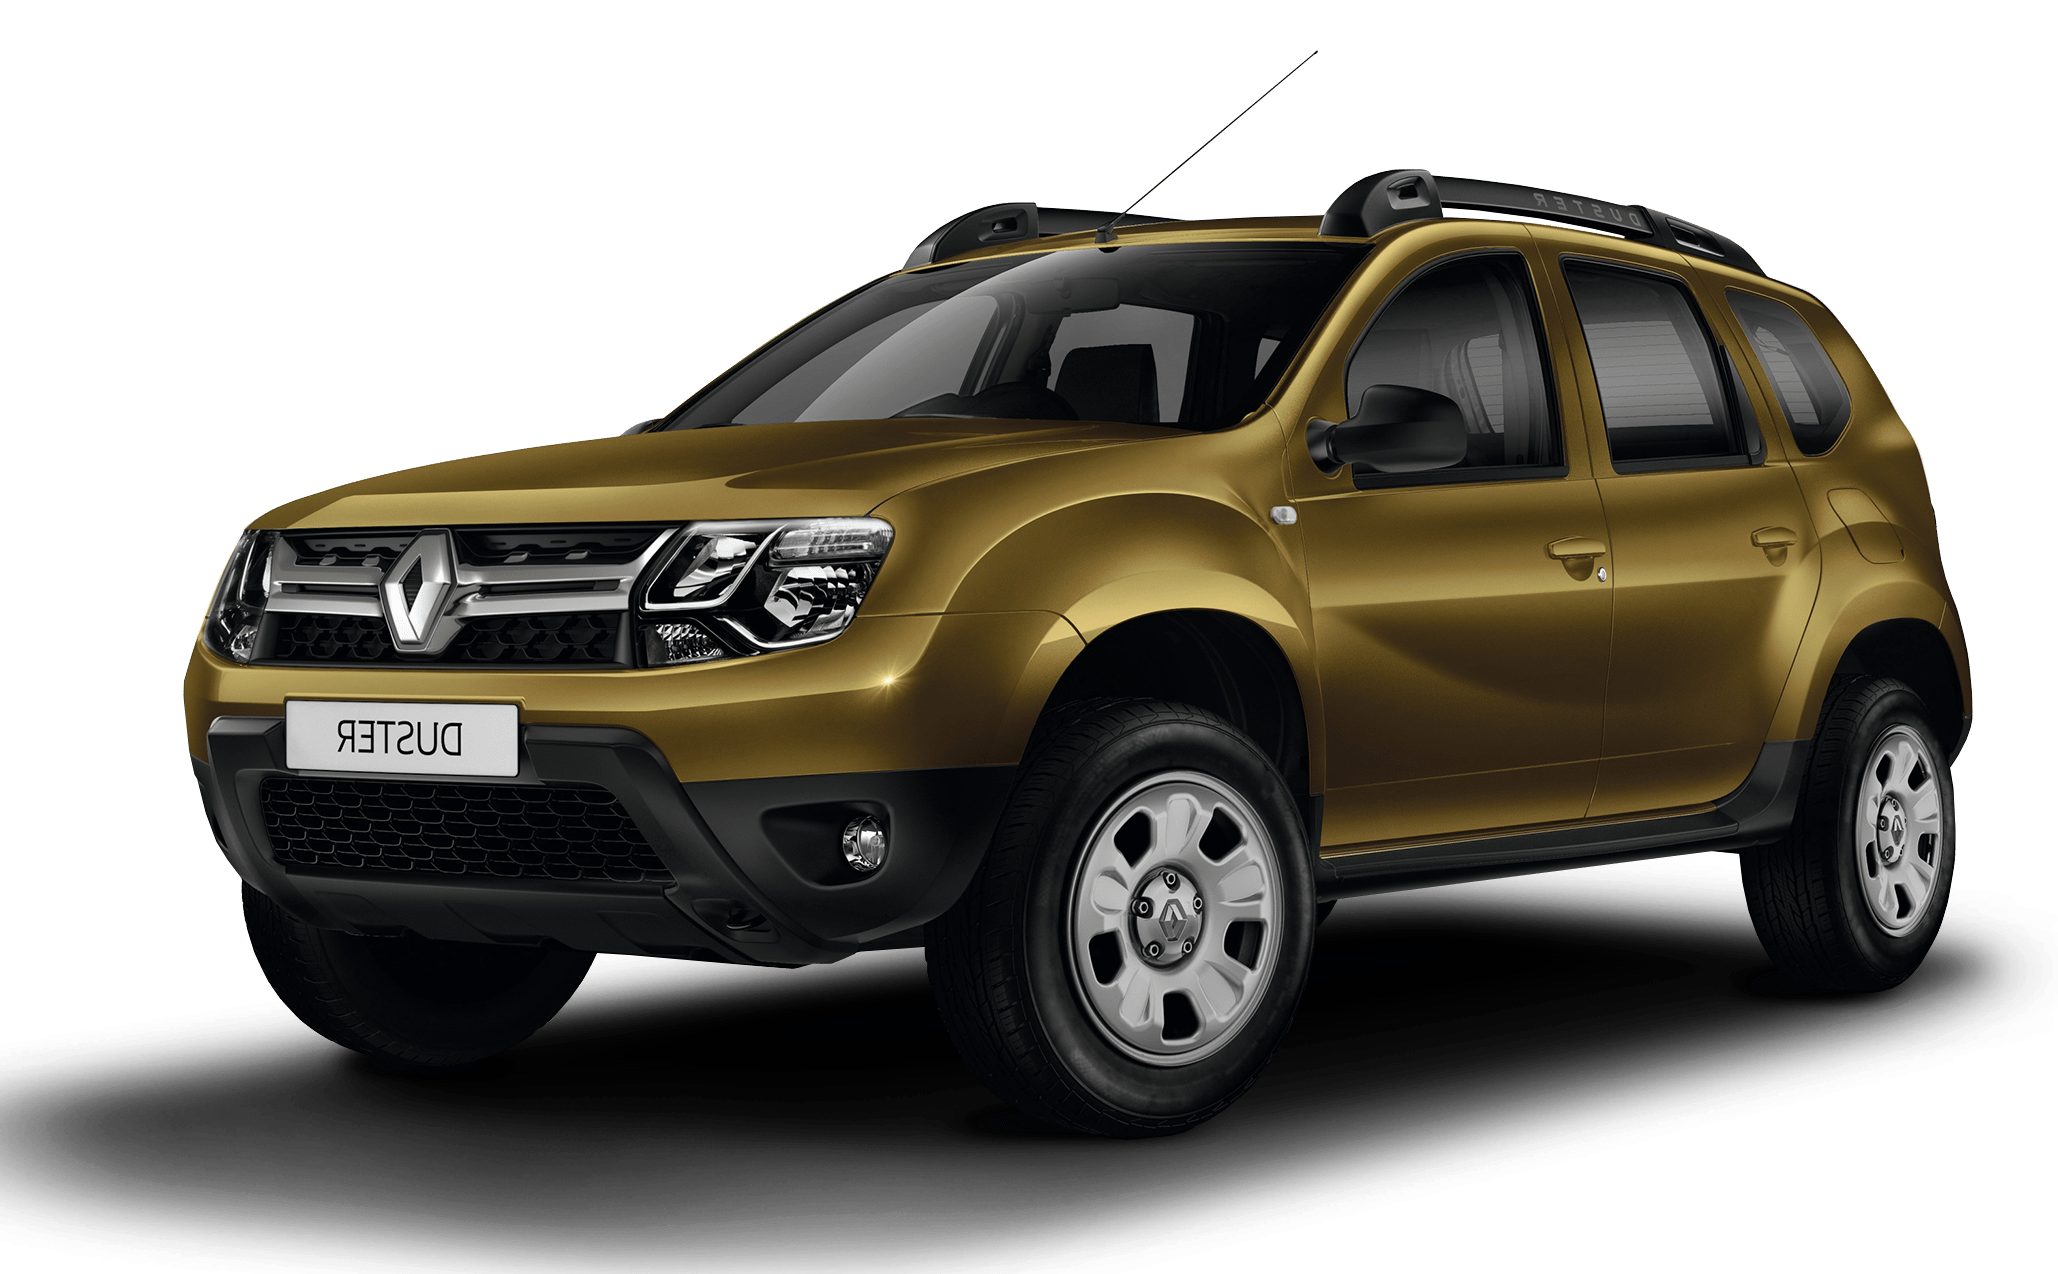 2018 renault duster se reviews 2018 renault duster car ratings price specifications. Black Bedroom Furniture Sets. Home Design Ideas